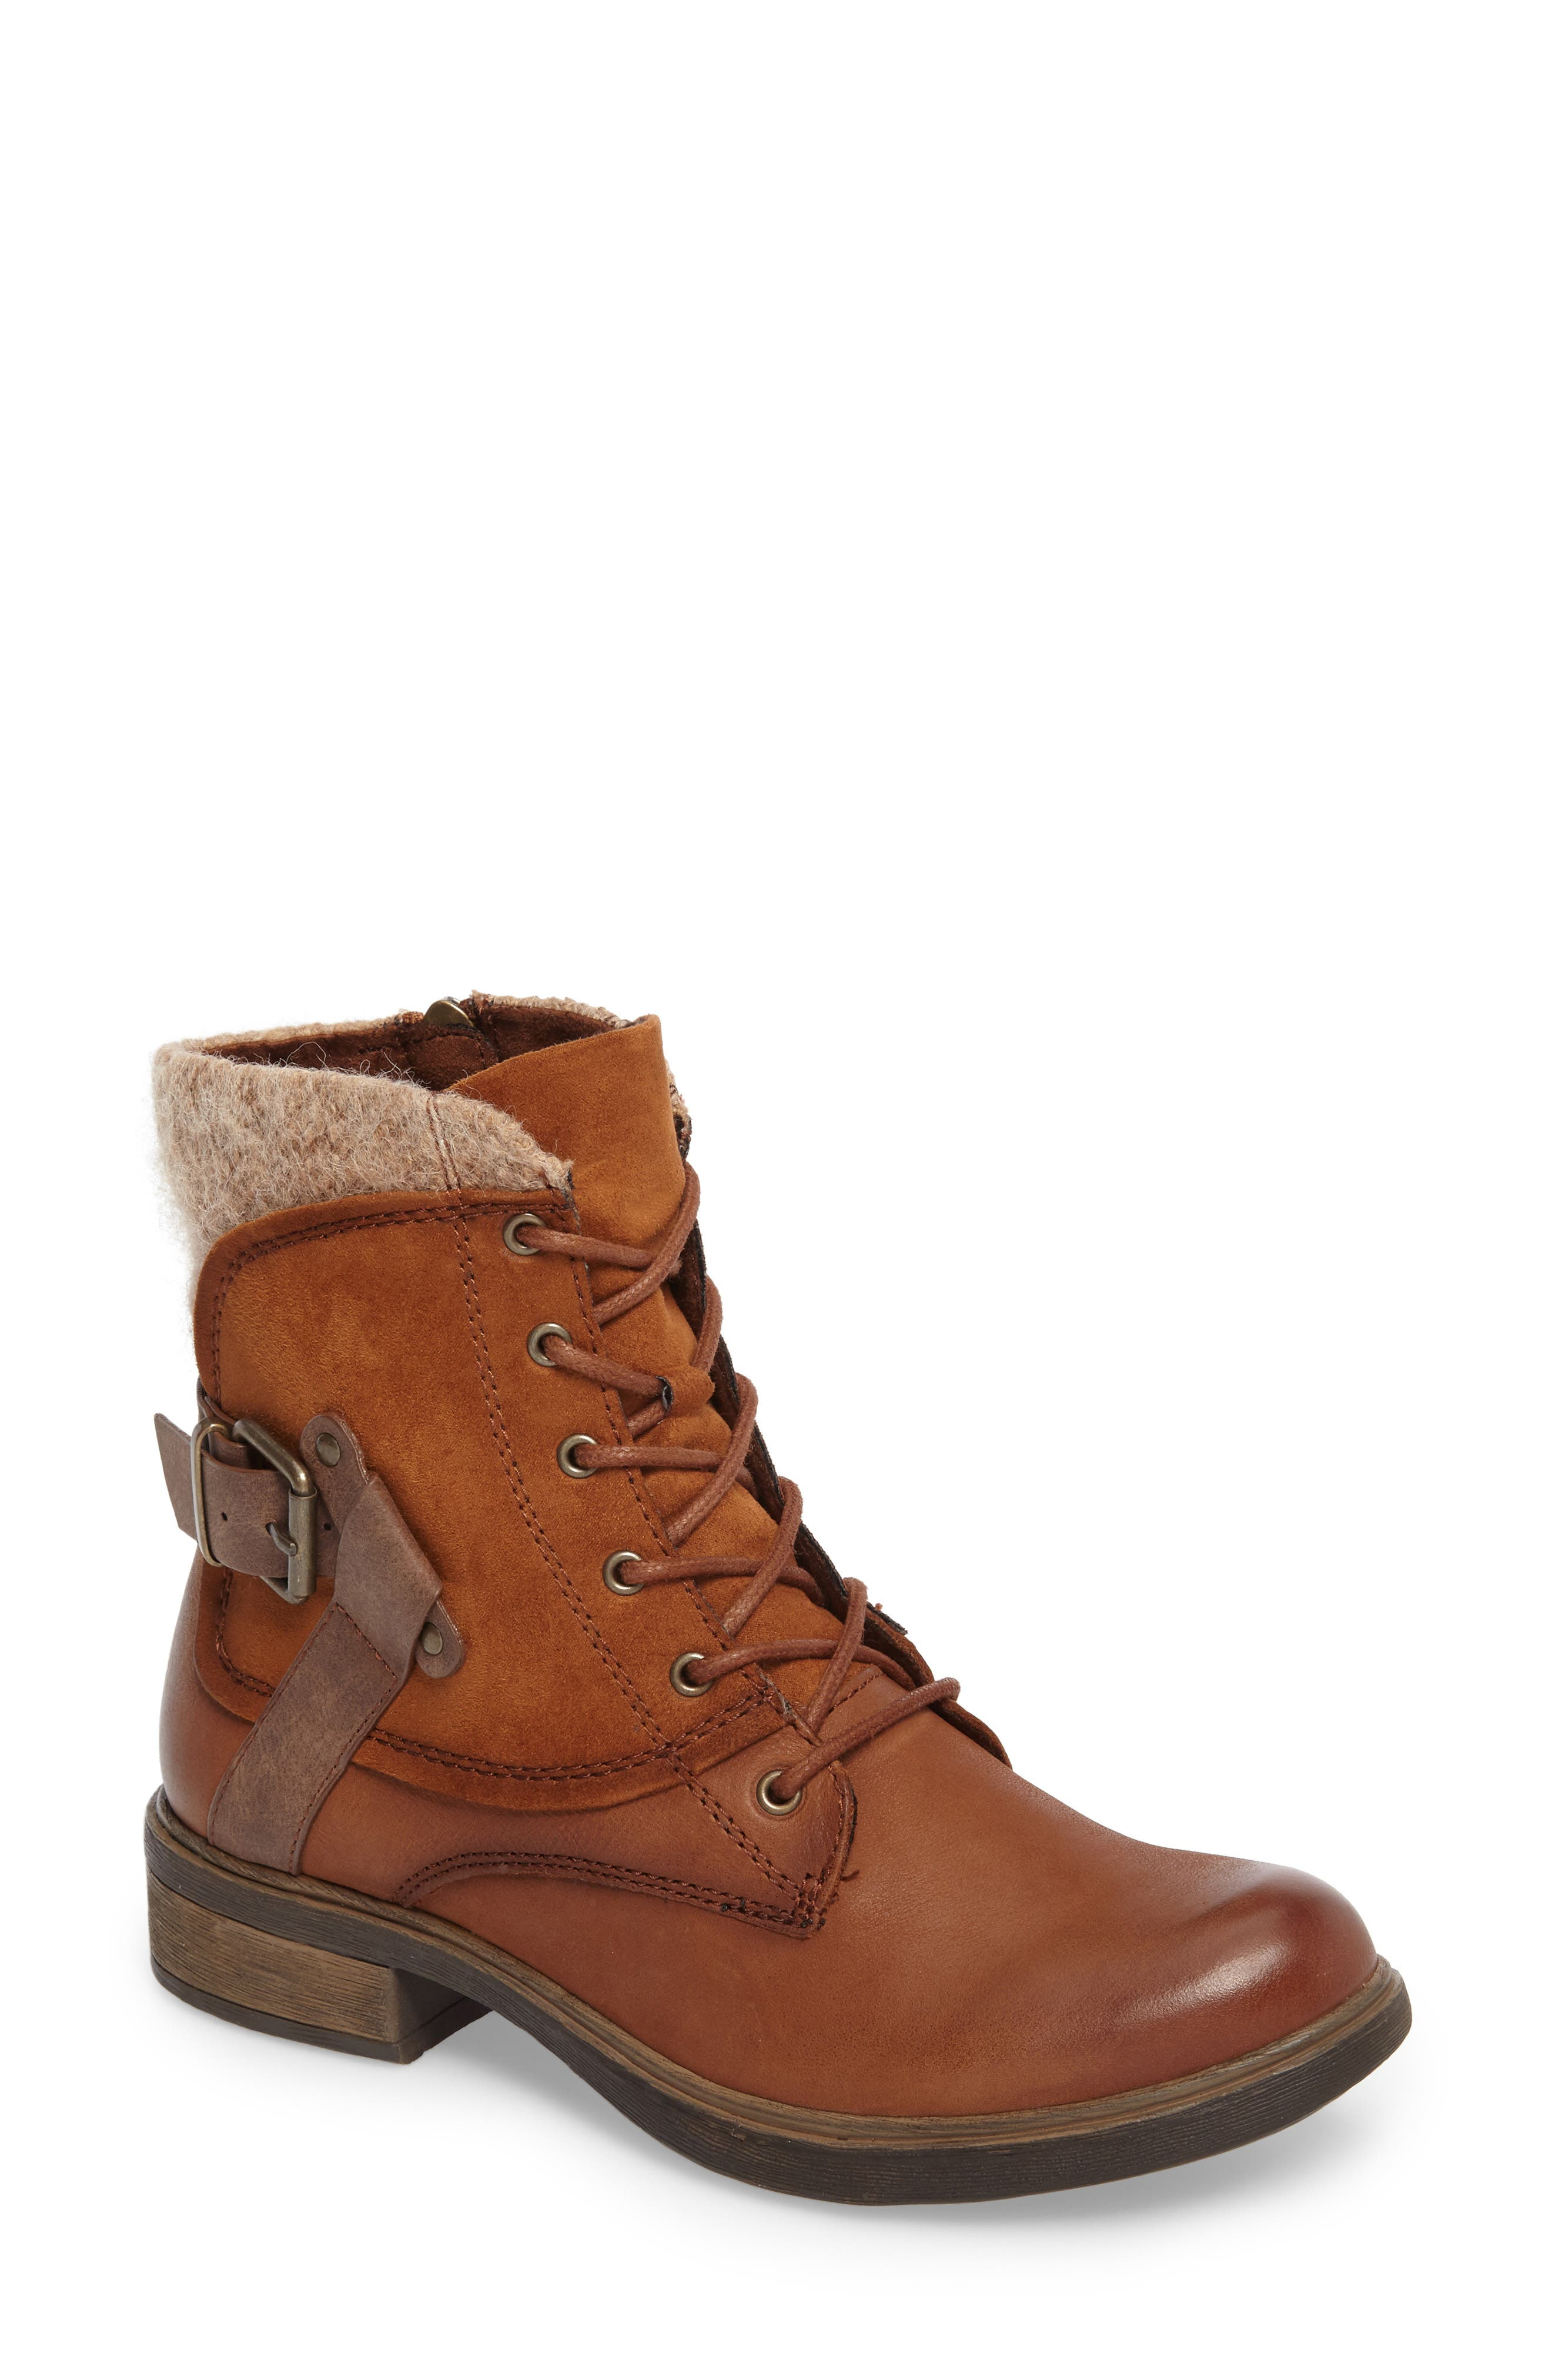 Helios Lace-Up Bootie,                         Main,                         color, Muscat Leather